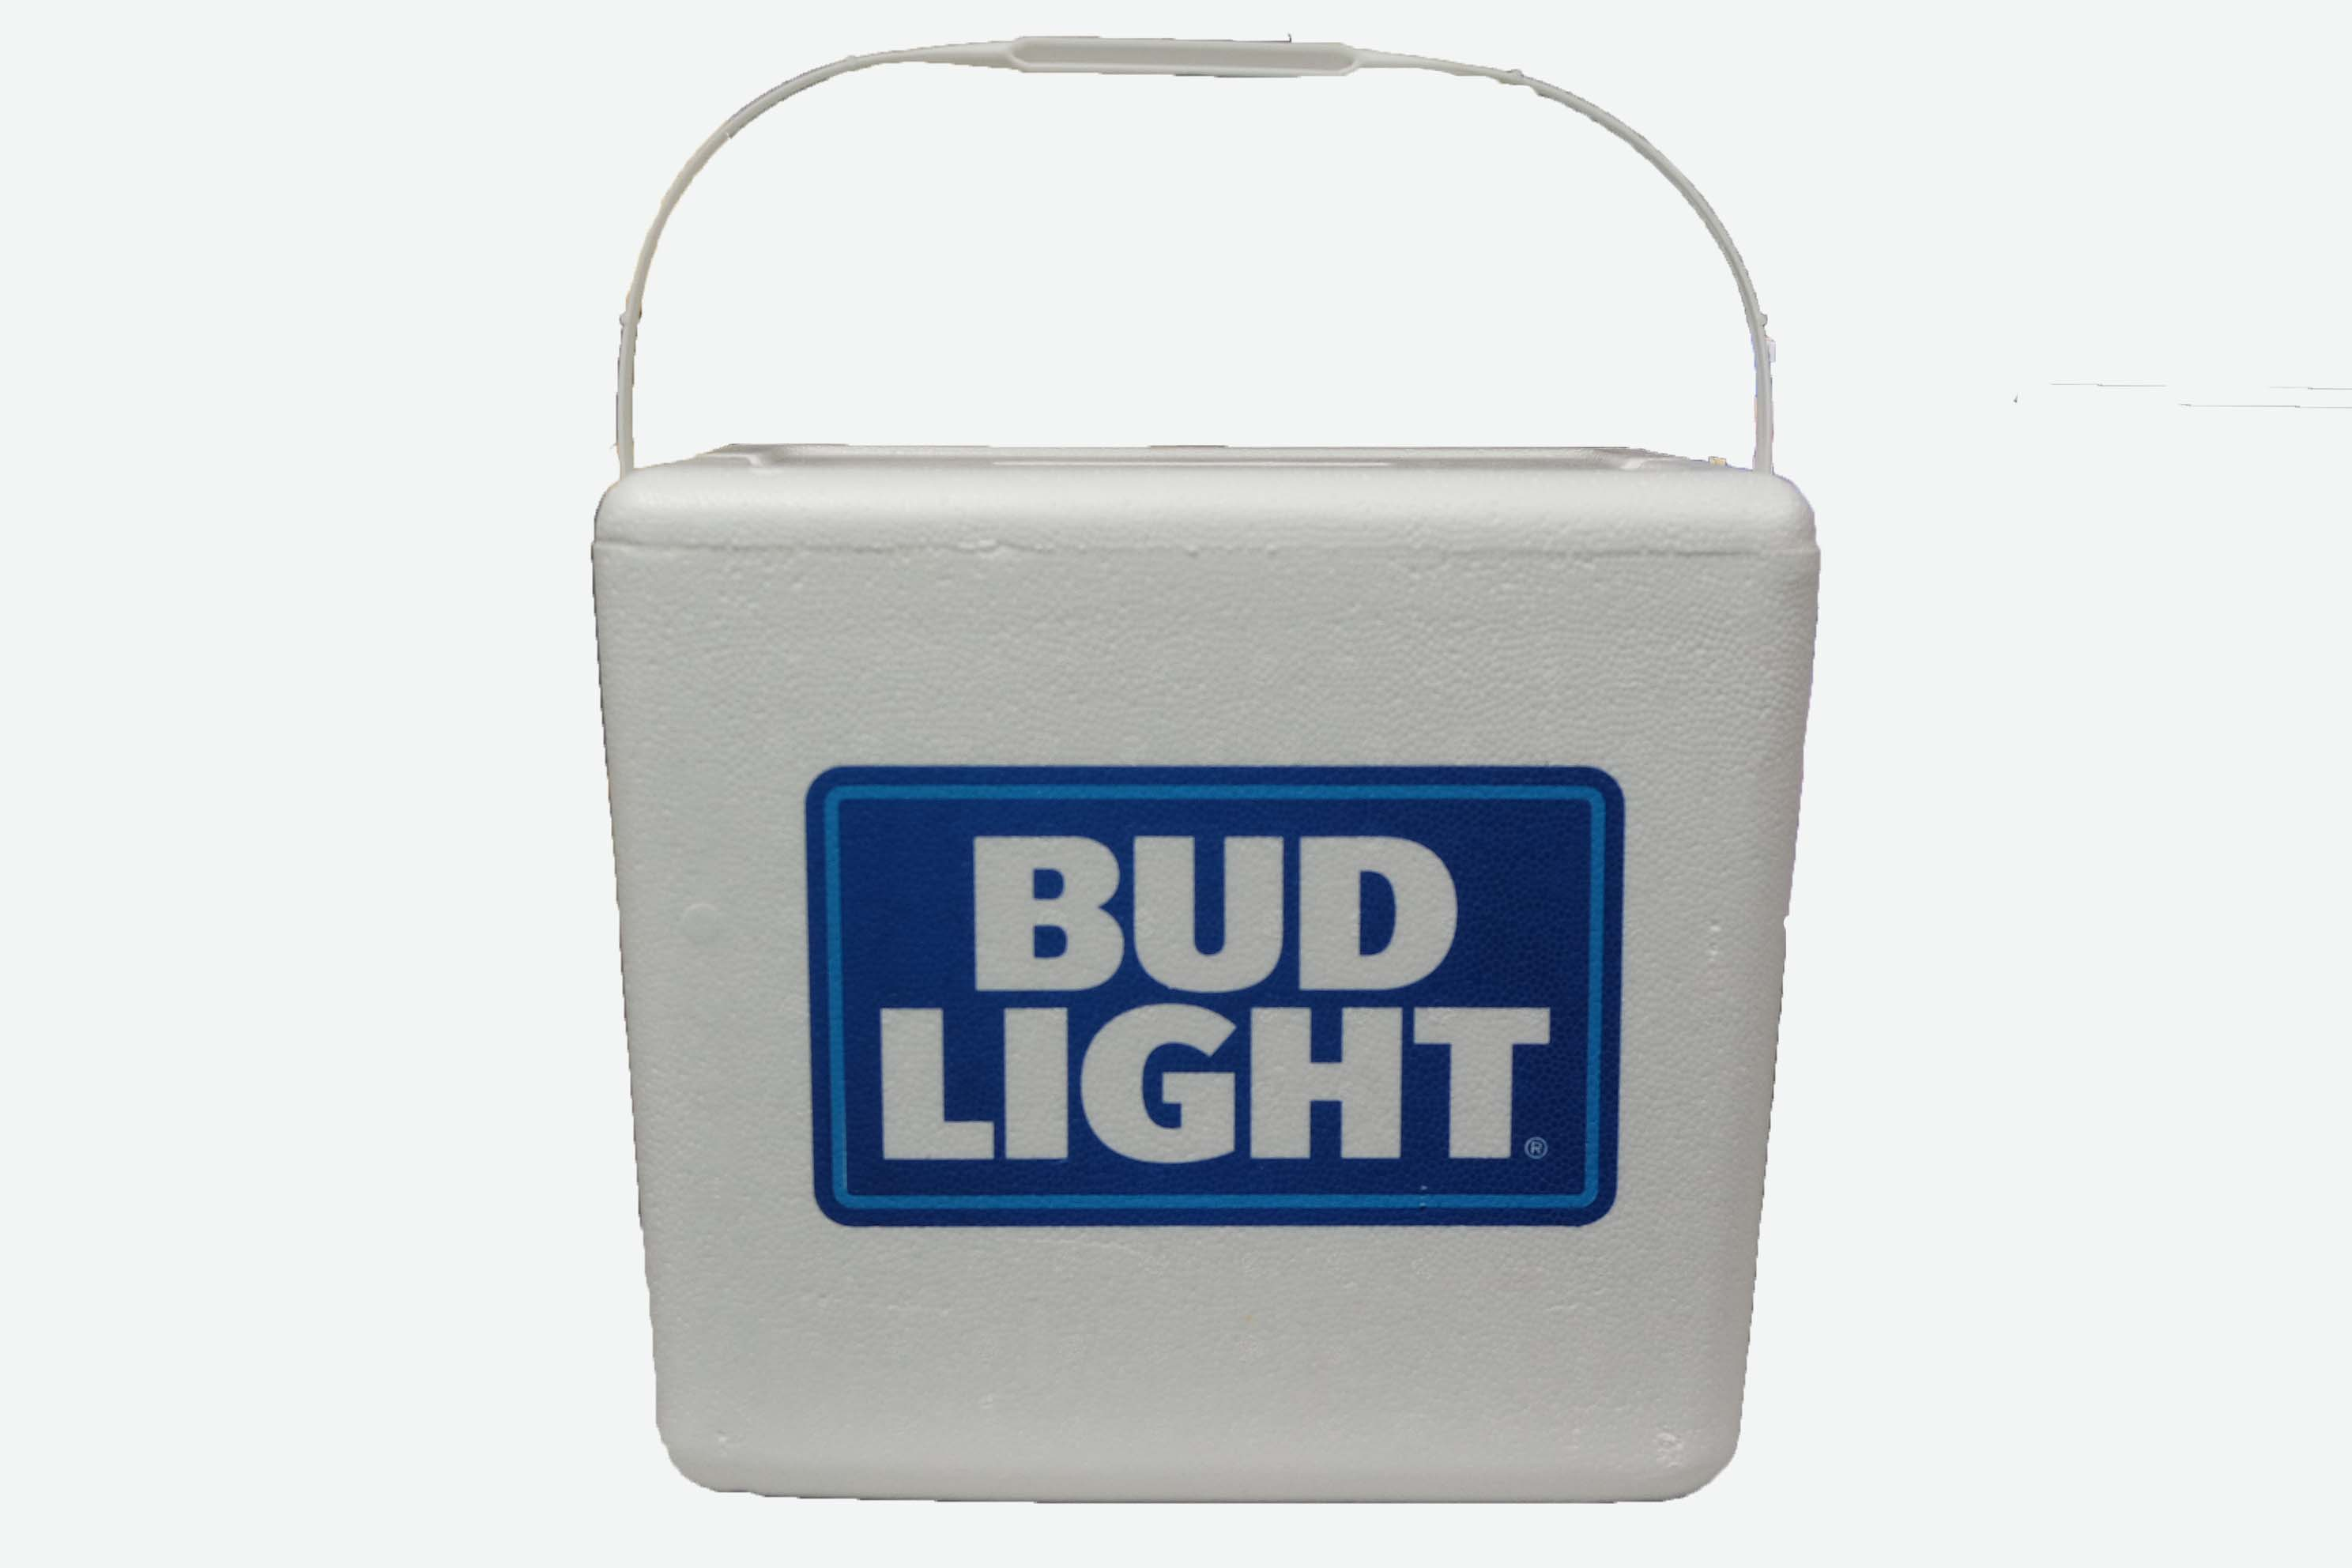 ICE CHEST BUD LIGHT COOLER 22QT